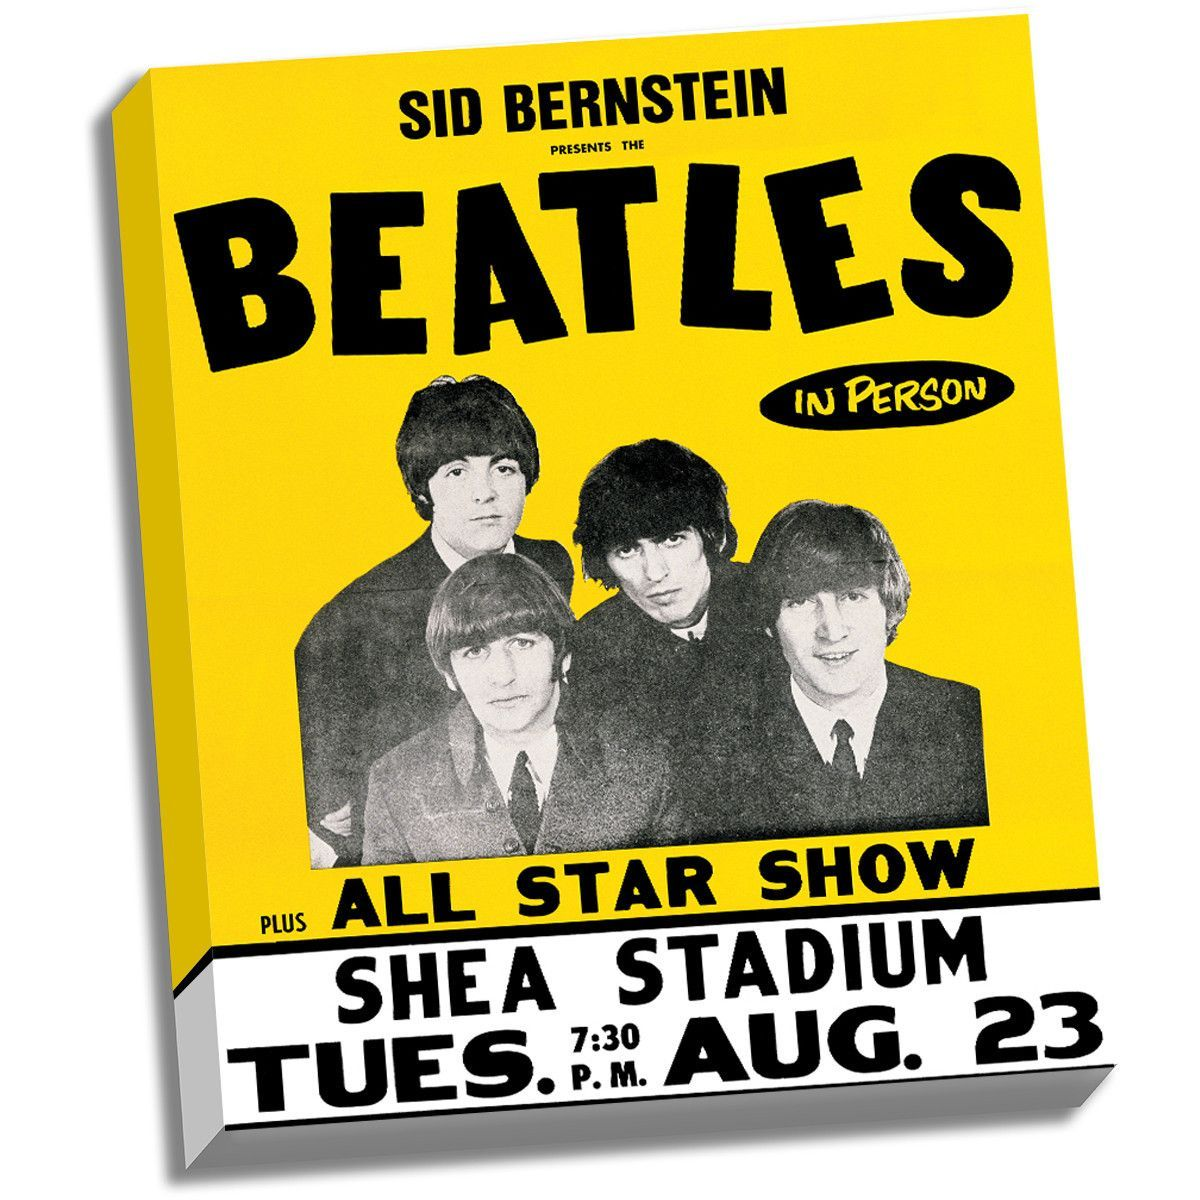 The Beatles Shea Stadium 8/23/66 Stretched 22x26 Canvas